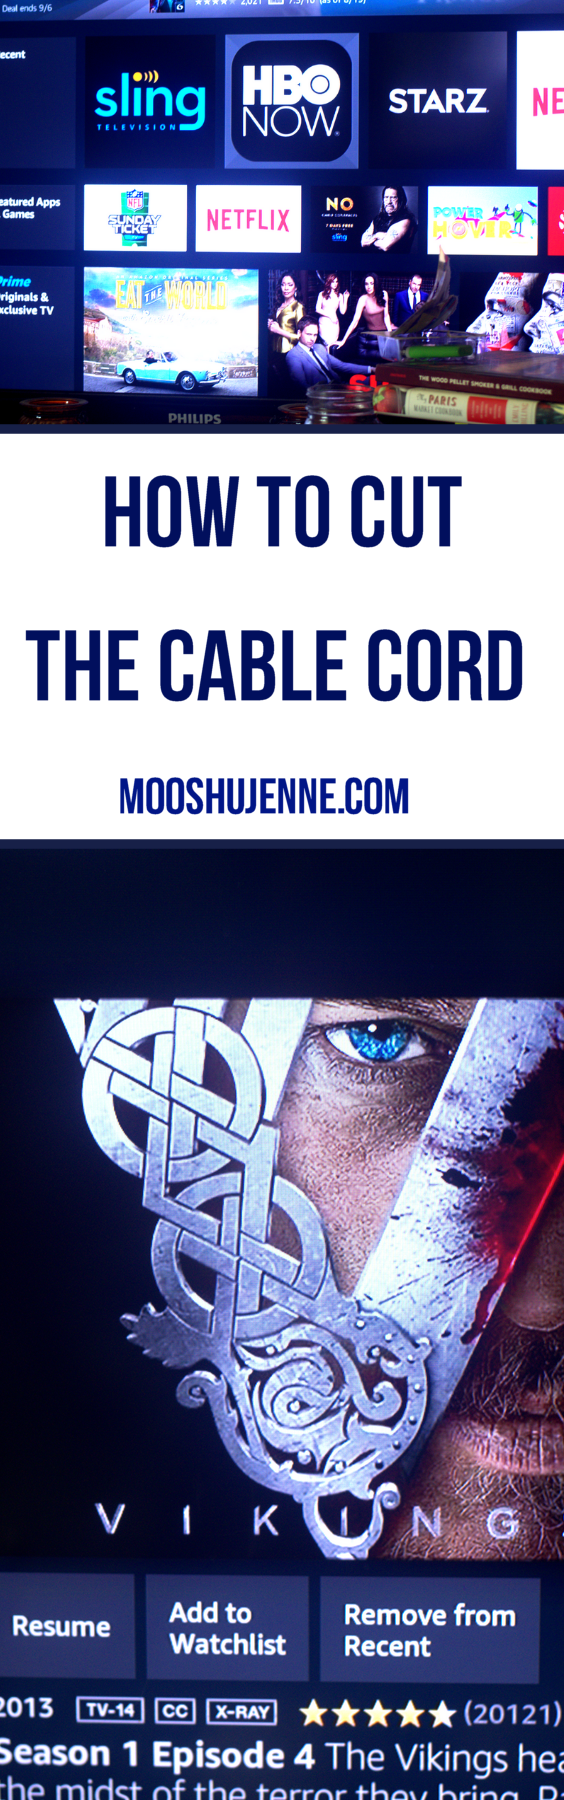 How to cut the cable cord without sacrificing your favorite shows.